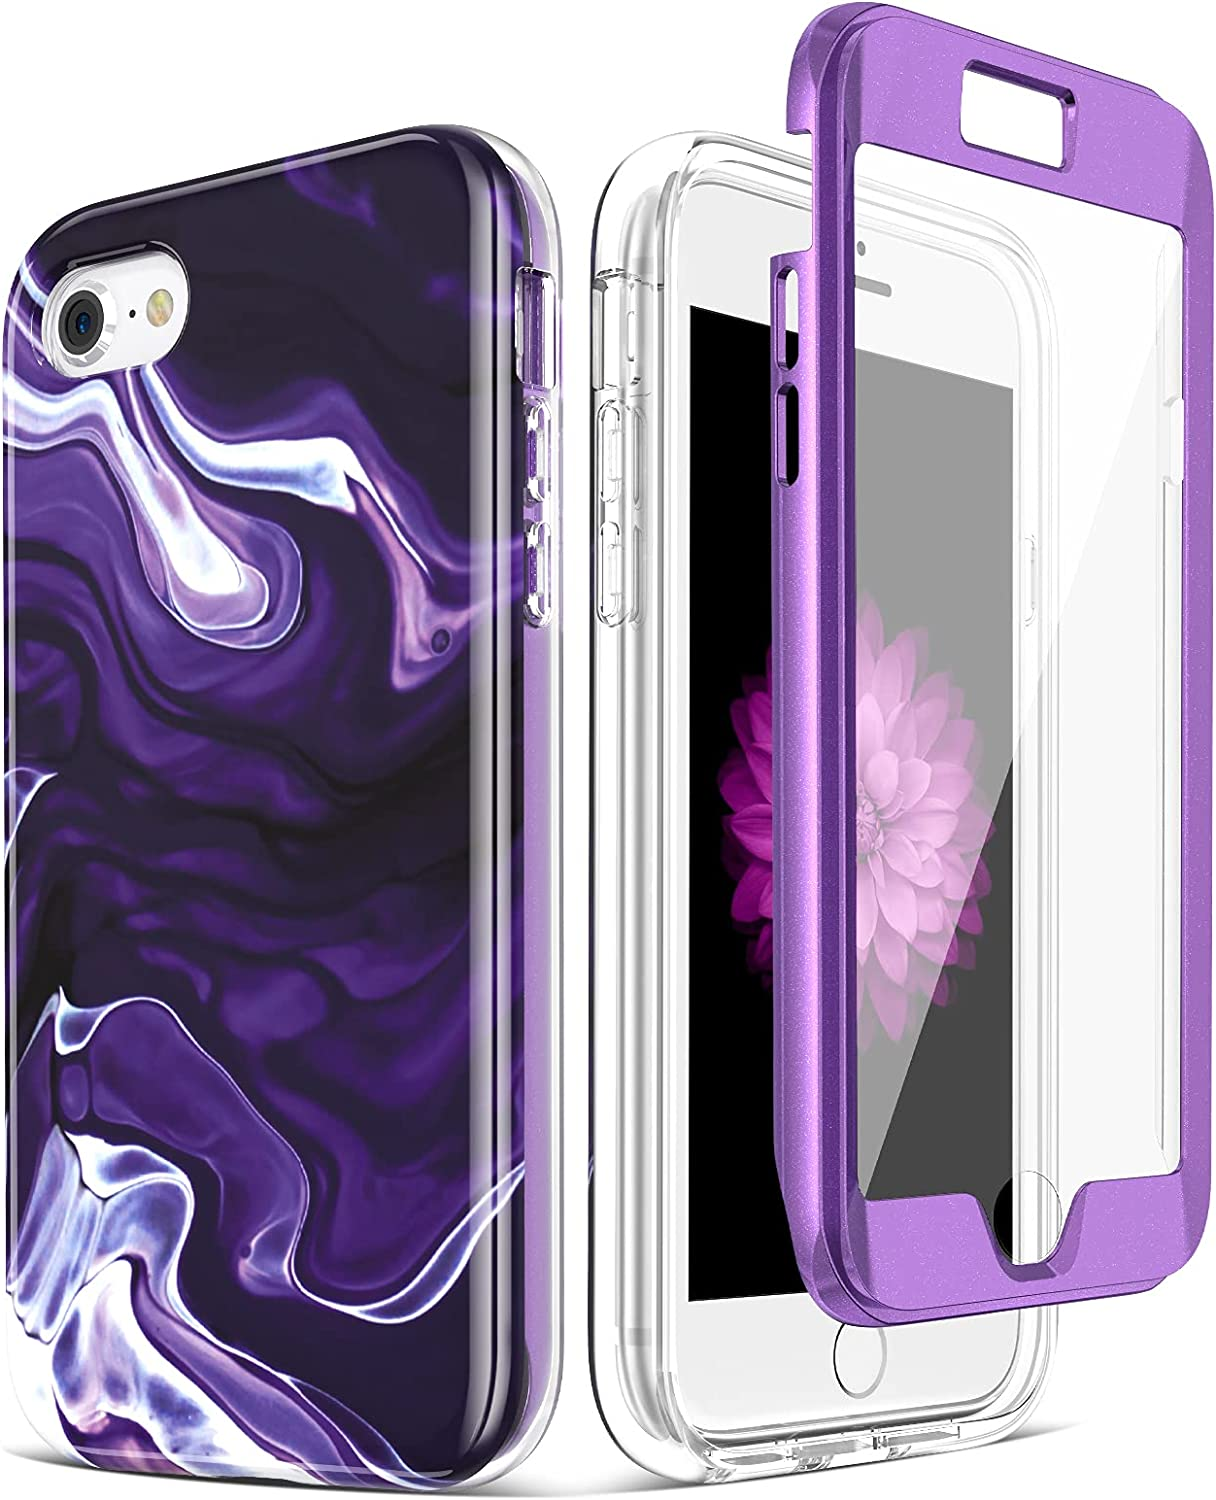 Caka iPhone 7 Case, iPhone 7 8 SE 2020 Marble Case with Built-in Screen Protector Protective Shockproof for Girls Women Anti Scratch Case for iPhone 7 8 SE 2020 (4.7 inches) (White Purple)